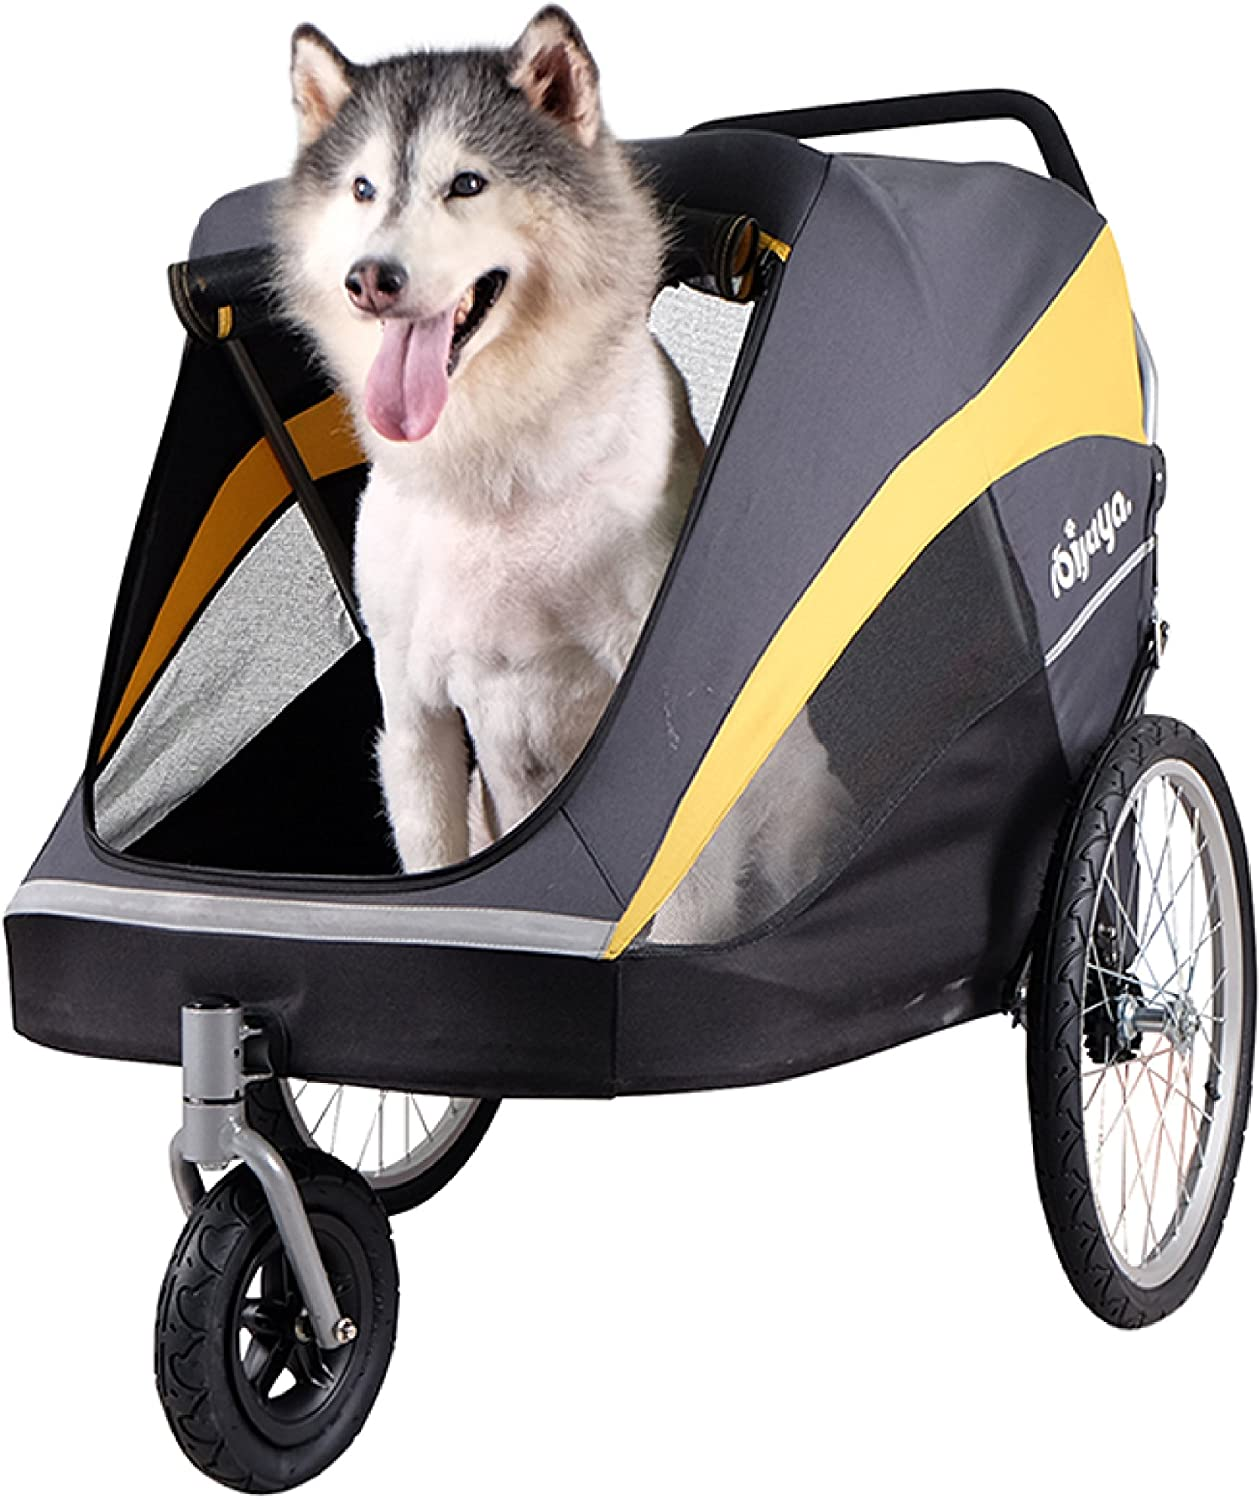 Best Large Dog Stroller 2020 Top Carriage for Big Dogs ...